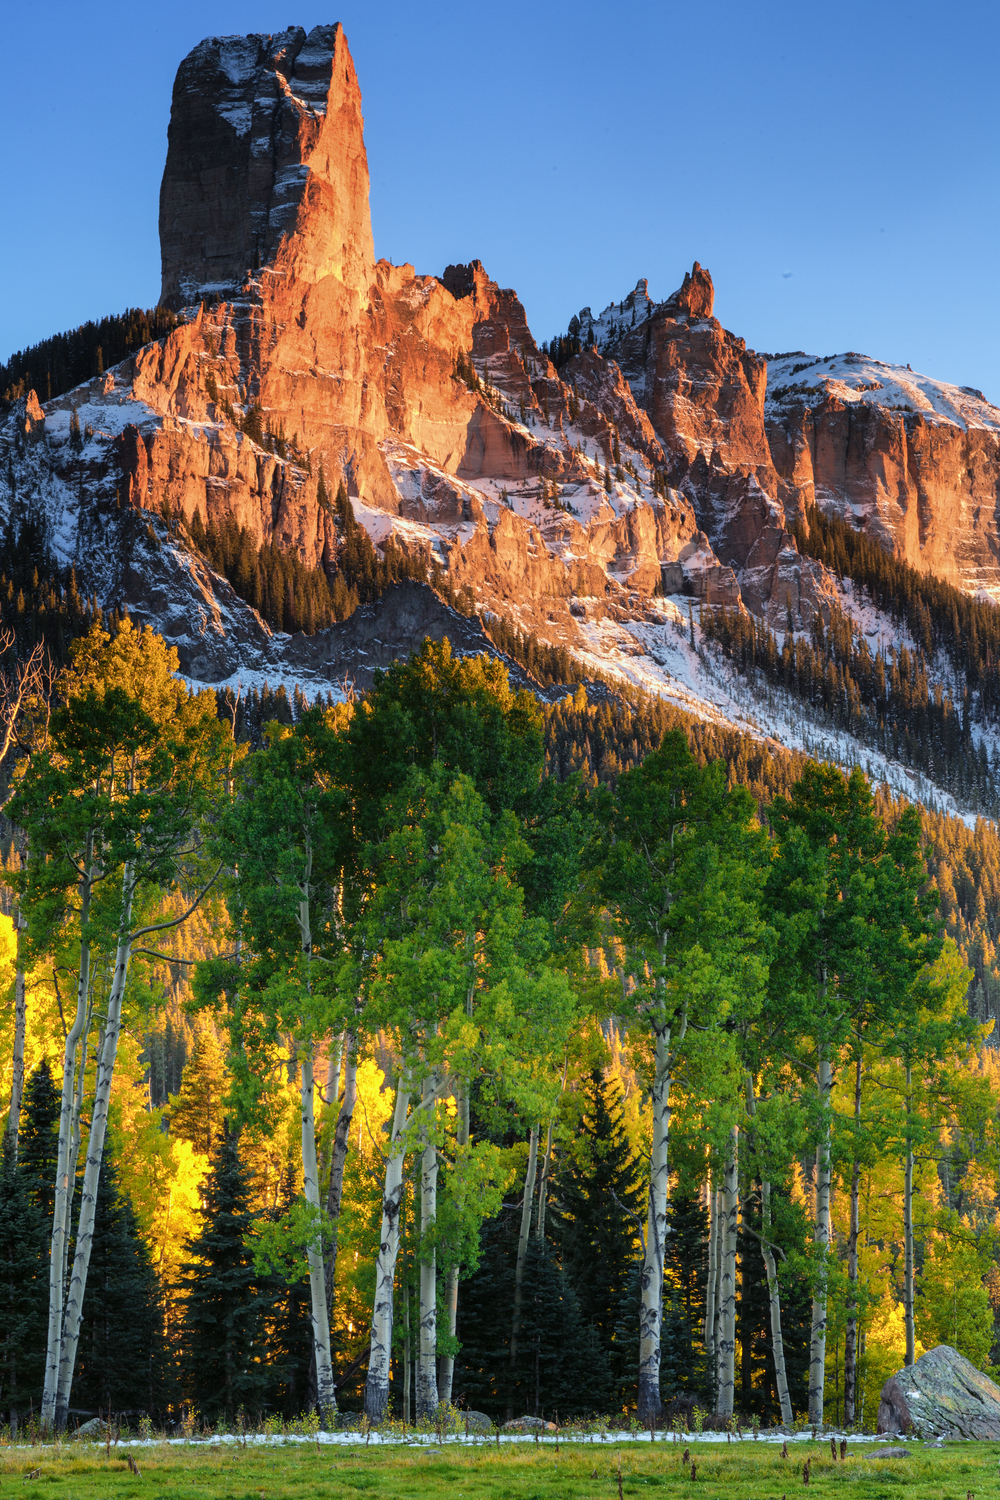 Chimney Rock, in the San Juan mountain range, stands above a grove of aspens.